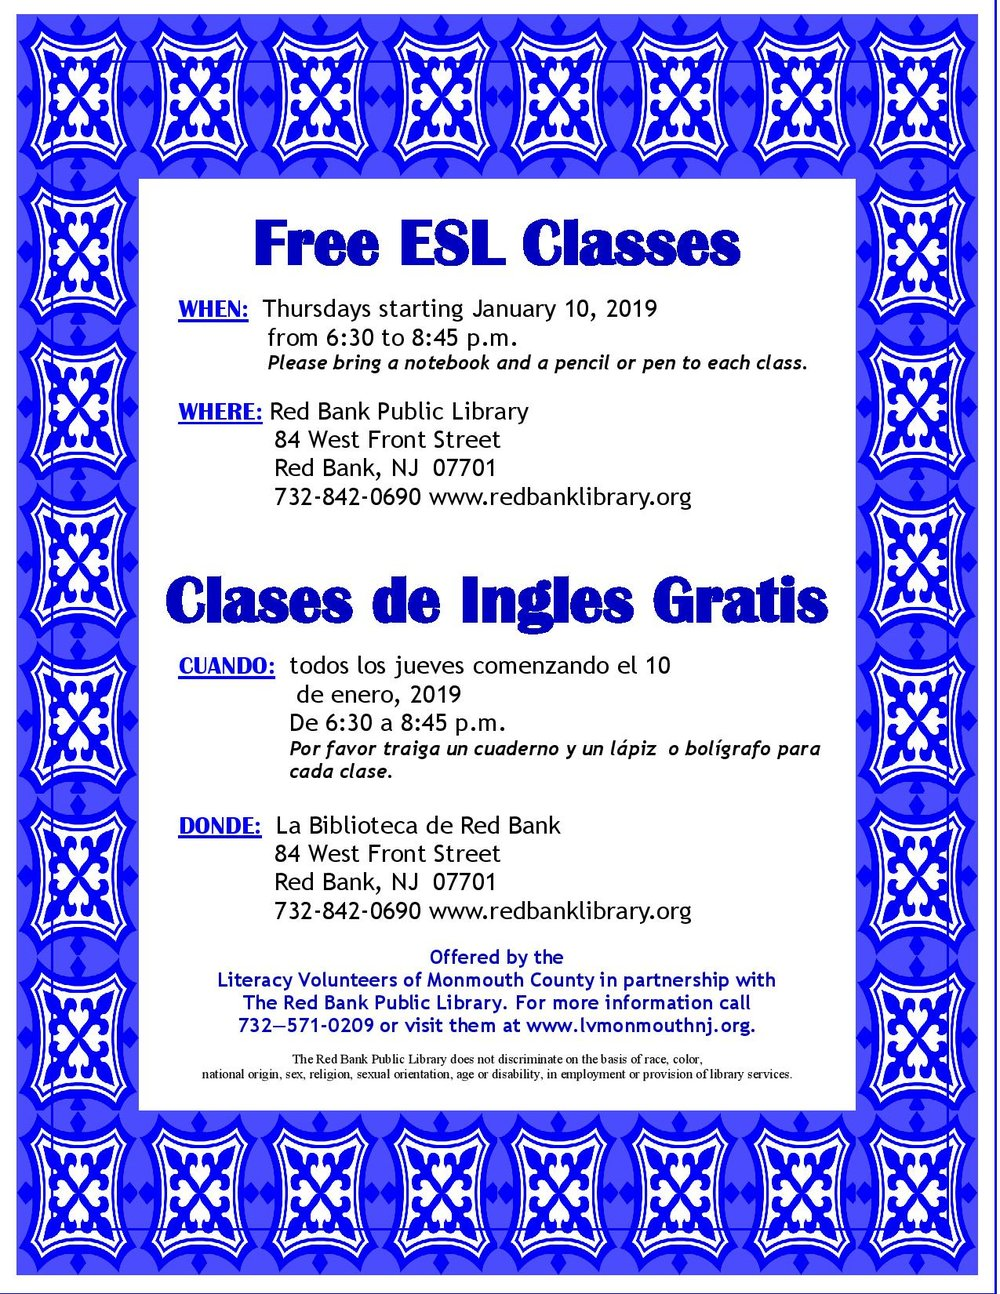 Flyer_LitVolMonCty_ESL_Winter19-page-001.jpg